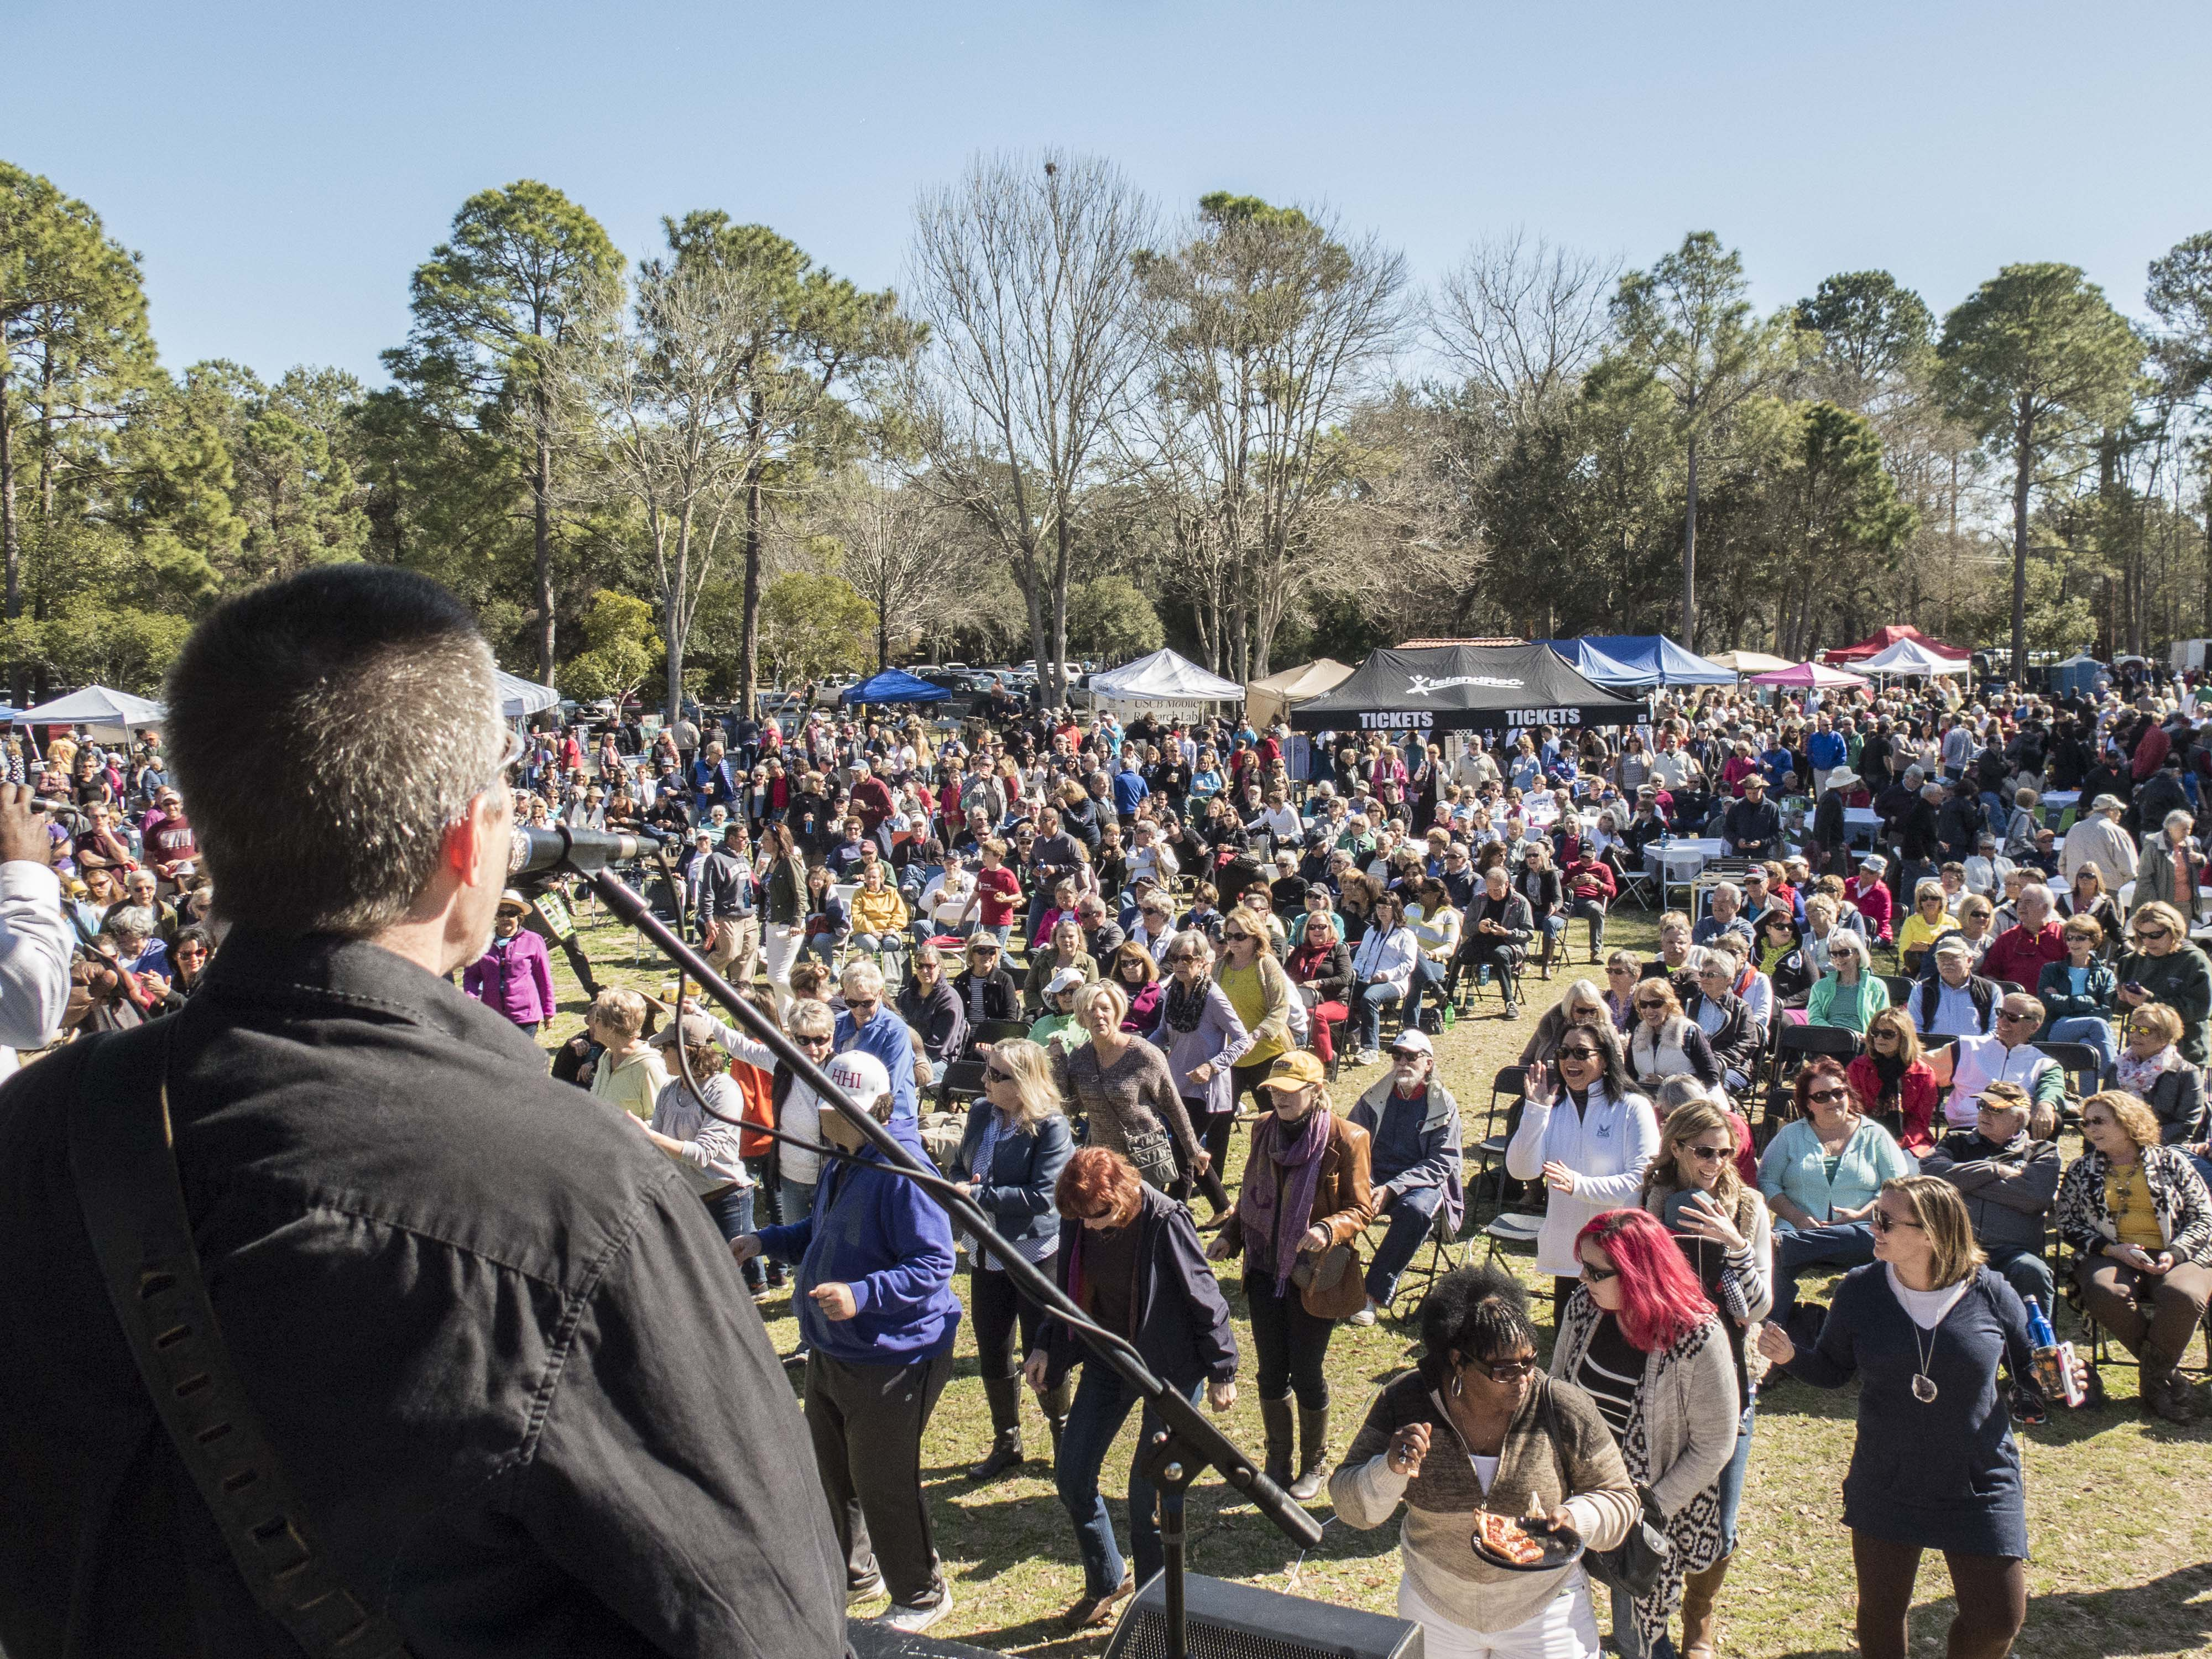 Saturday's main event at Shelter Cove Park is one of the biggest food events of the year